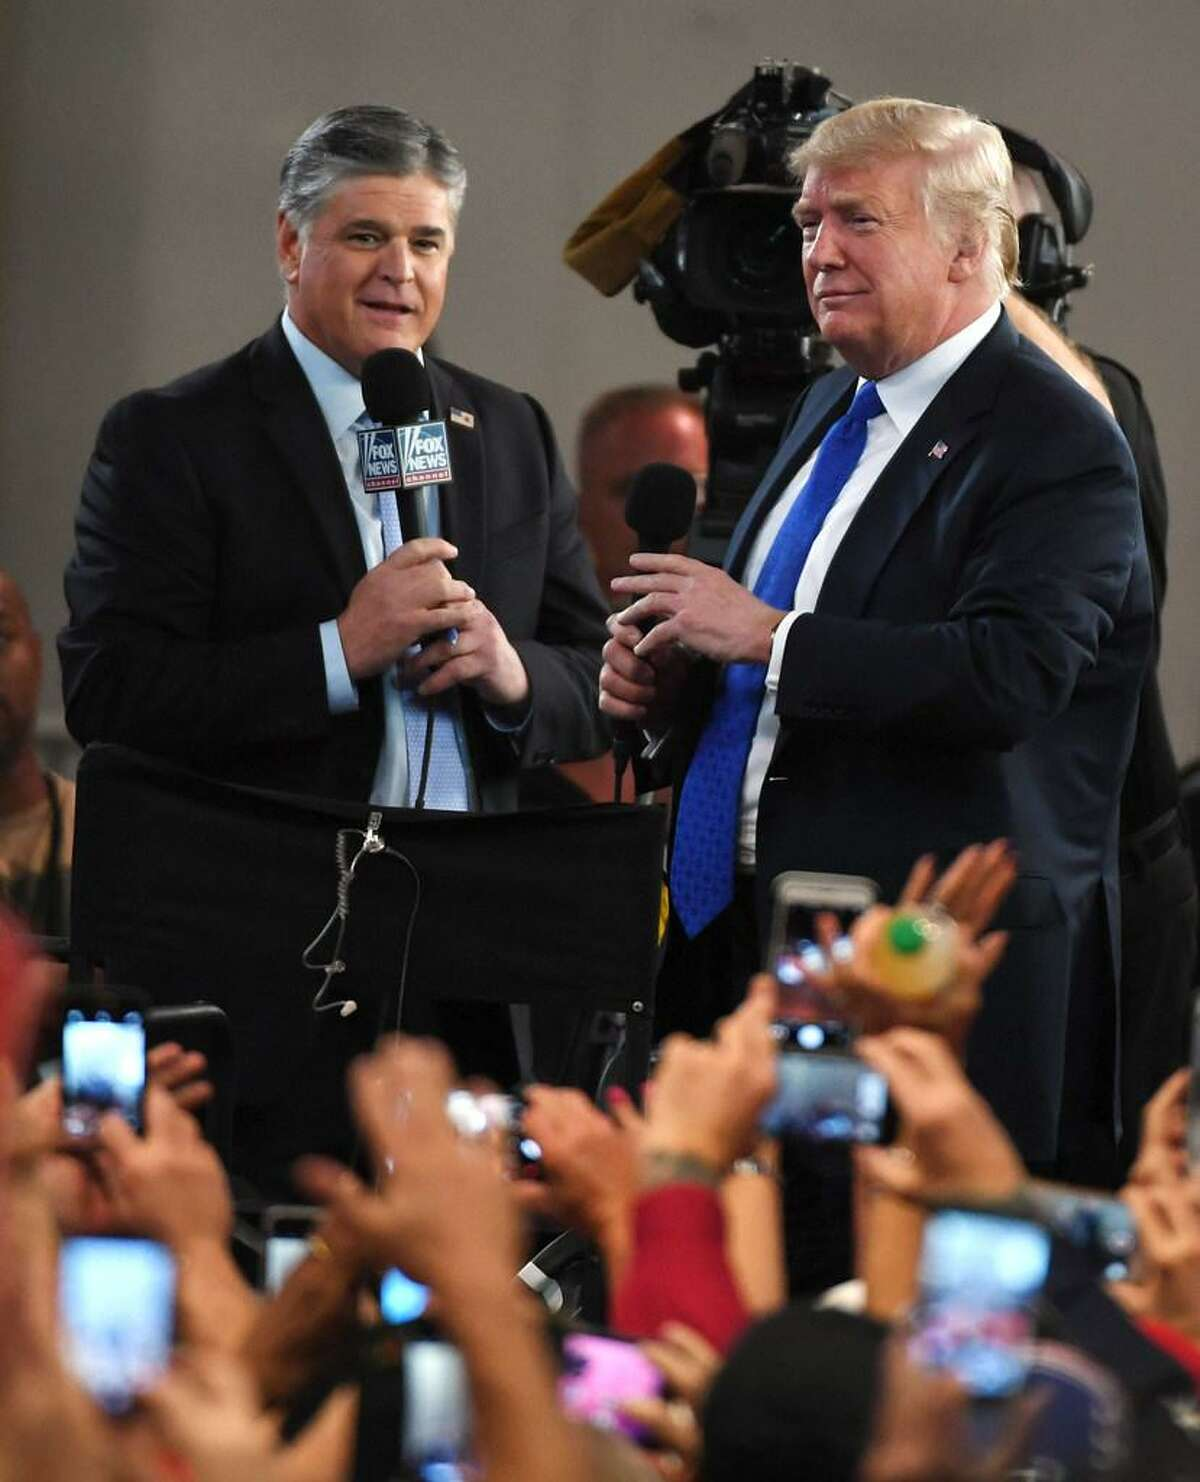 Fox News Channel and radio talk show host Sean Hannity (L) interviews U.S. President Donald Trump before a campaign rally at the Las Vegas Convention Center on September 20, 2018 in Las Vegas, Nevada.